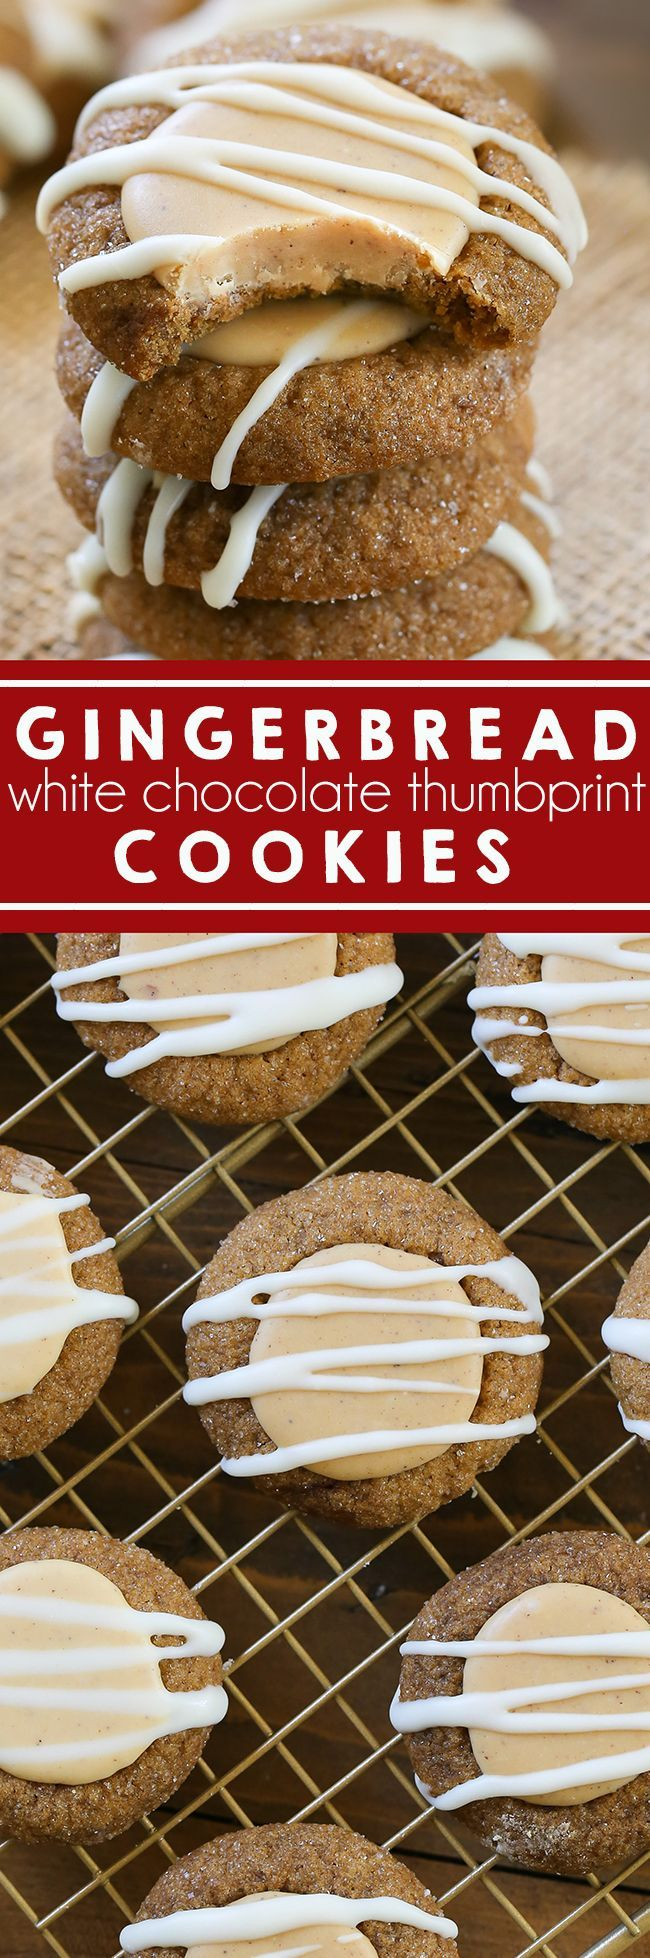 Gingerbread Thumbprint Cookies - Chewy cookies with a spiced white chocolate filling. A dessert favorite that's perfect to make for holiday parties.